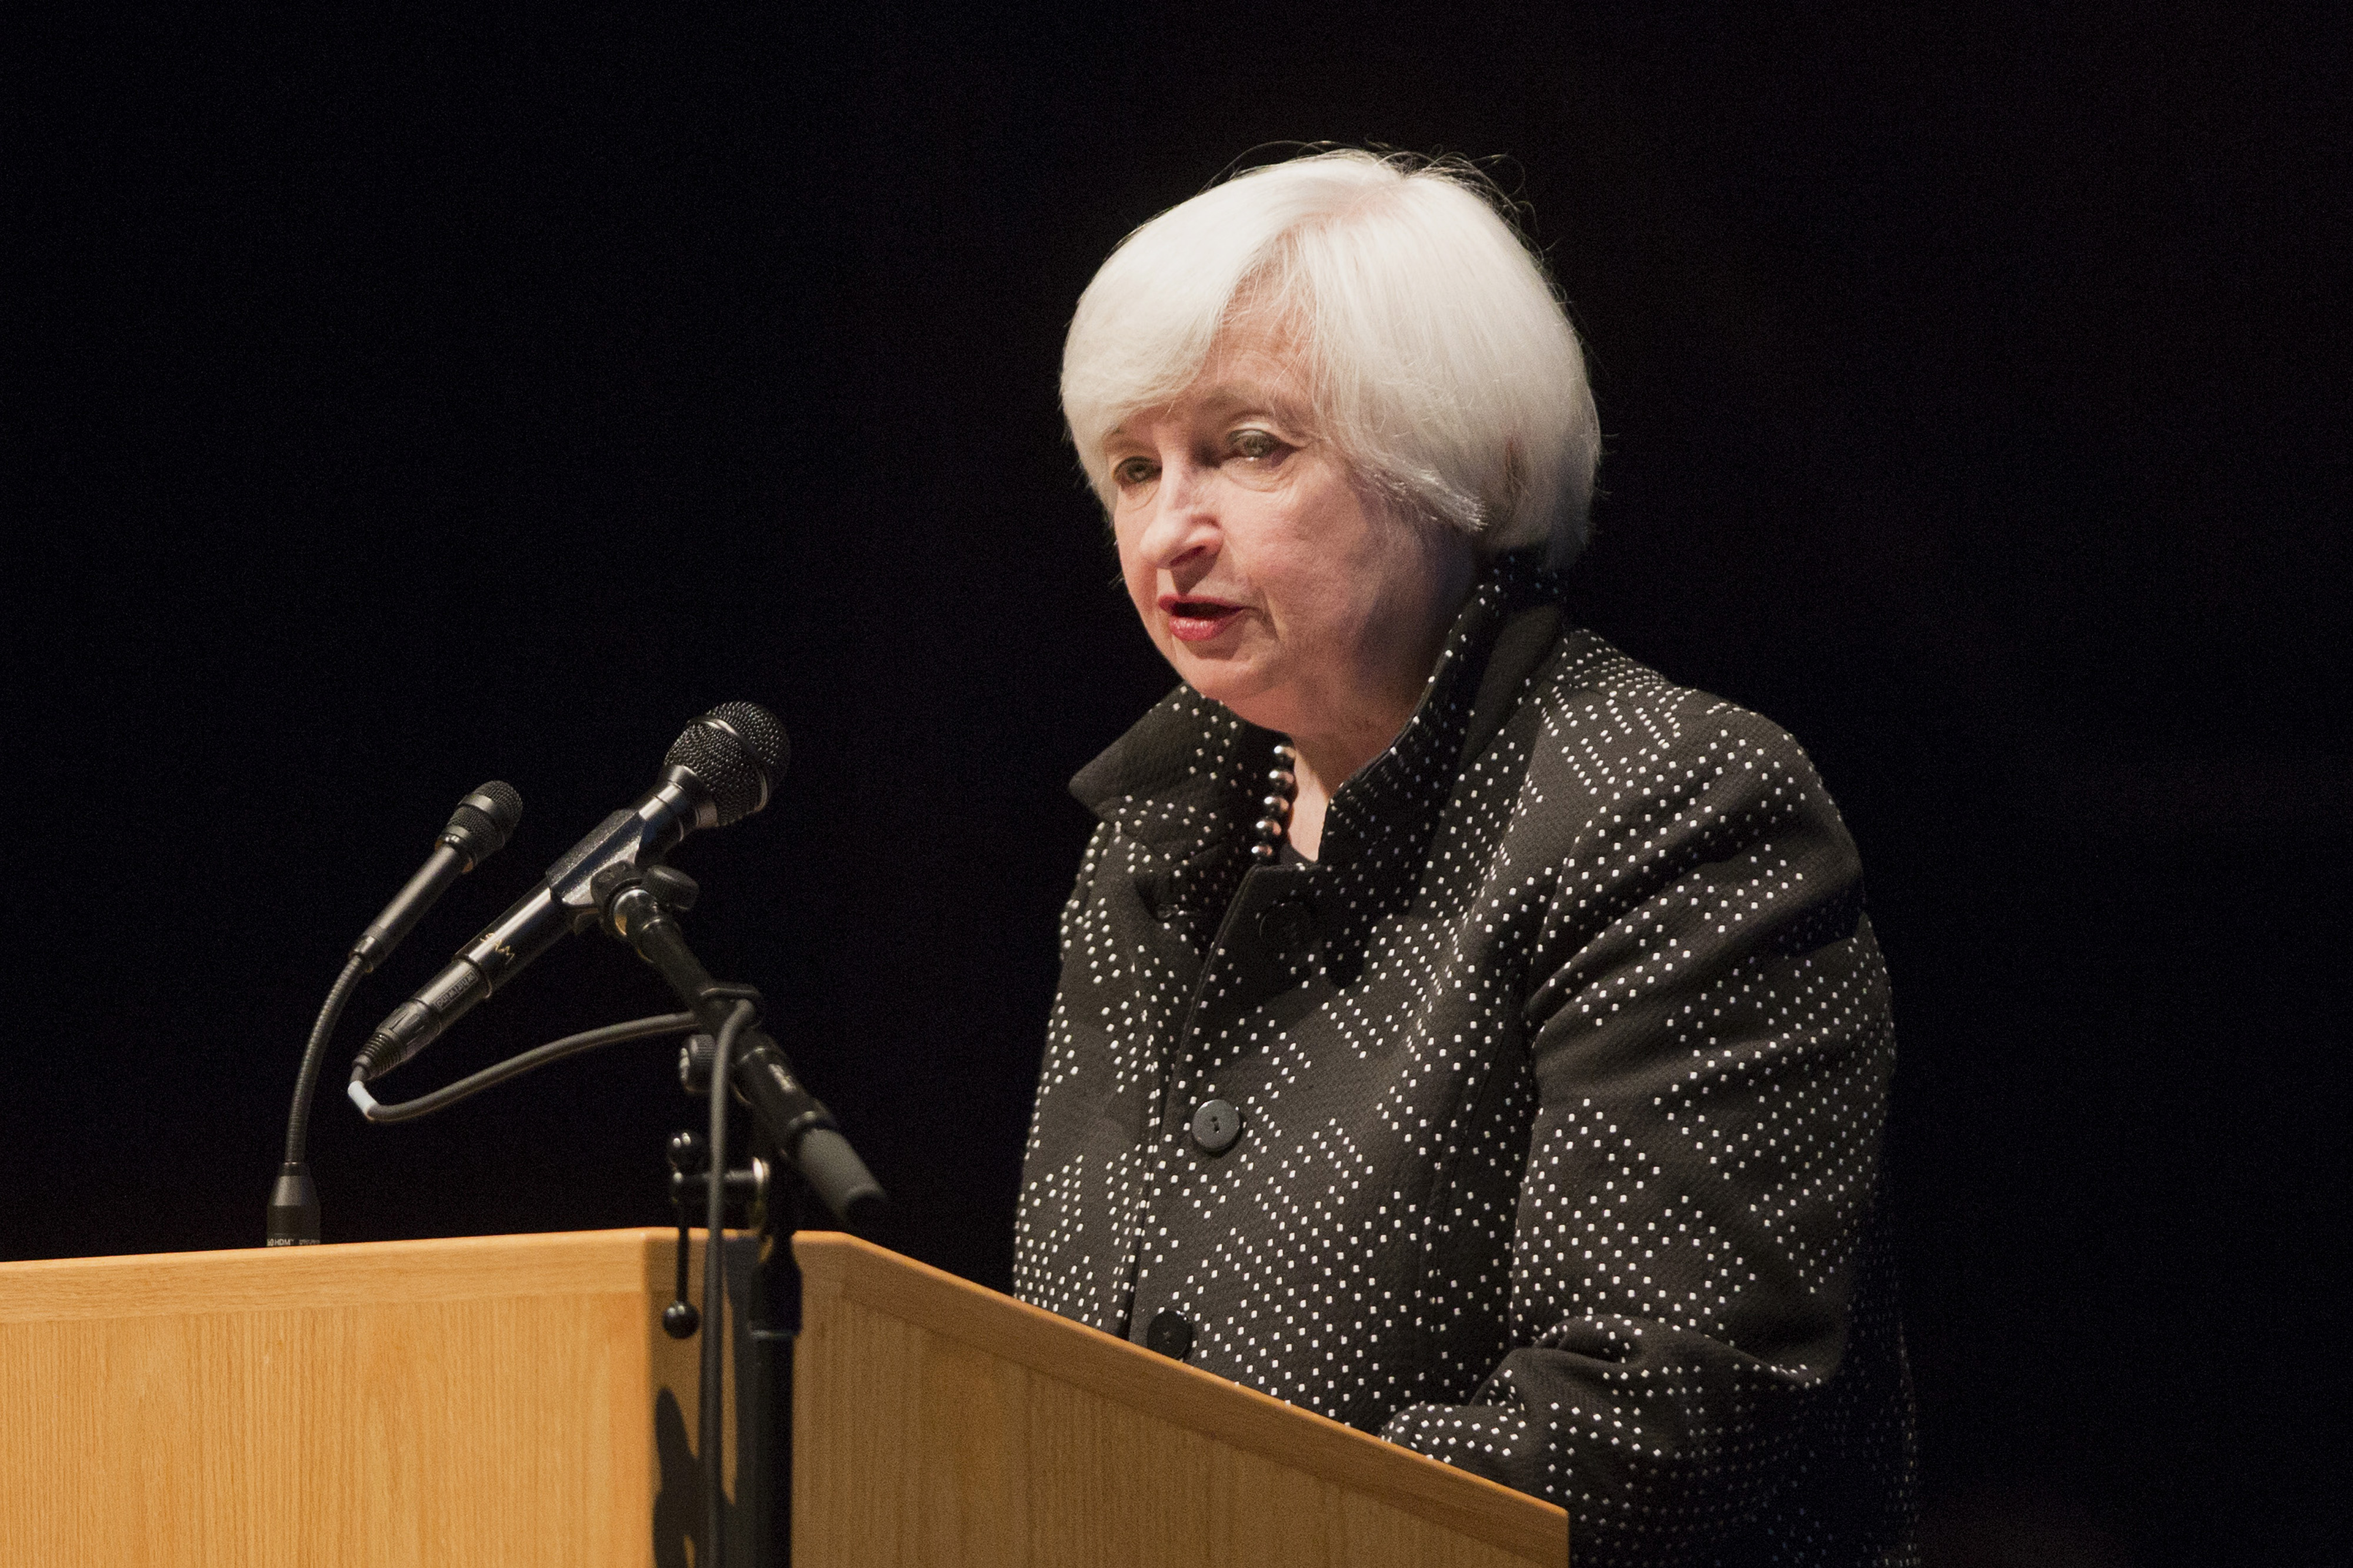 Janet Yellen, chair of the U.S. Federal Reserve, speaks during the annual Philip Gamble Memorial Lecture at the University of Massachusetts Amherst in Amherst, Massachusetts, U.S., on Thursday, Sept. 24, 2015. Photographer: Scott Eisen/Bloomberg *** Local Caption *** Janet Yellen